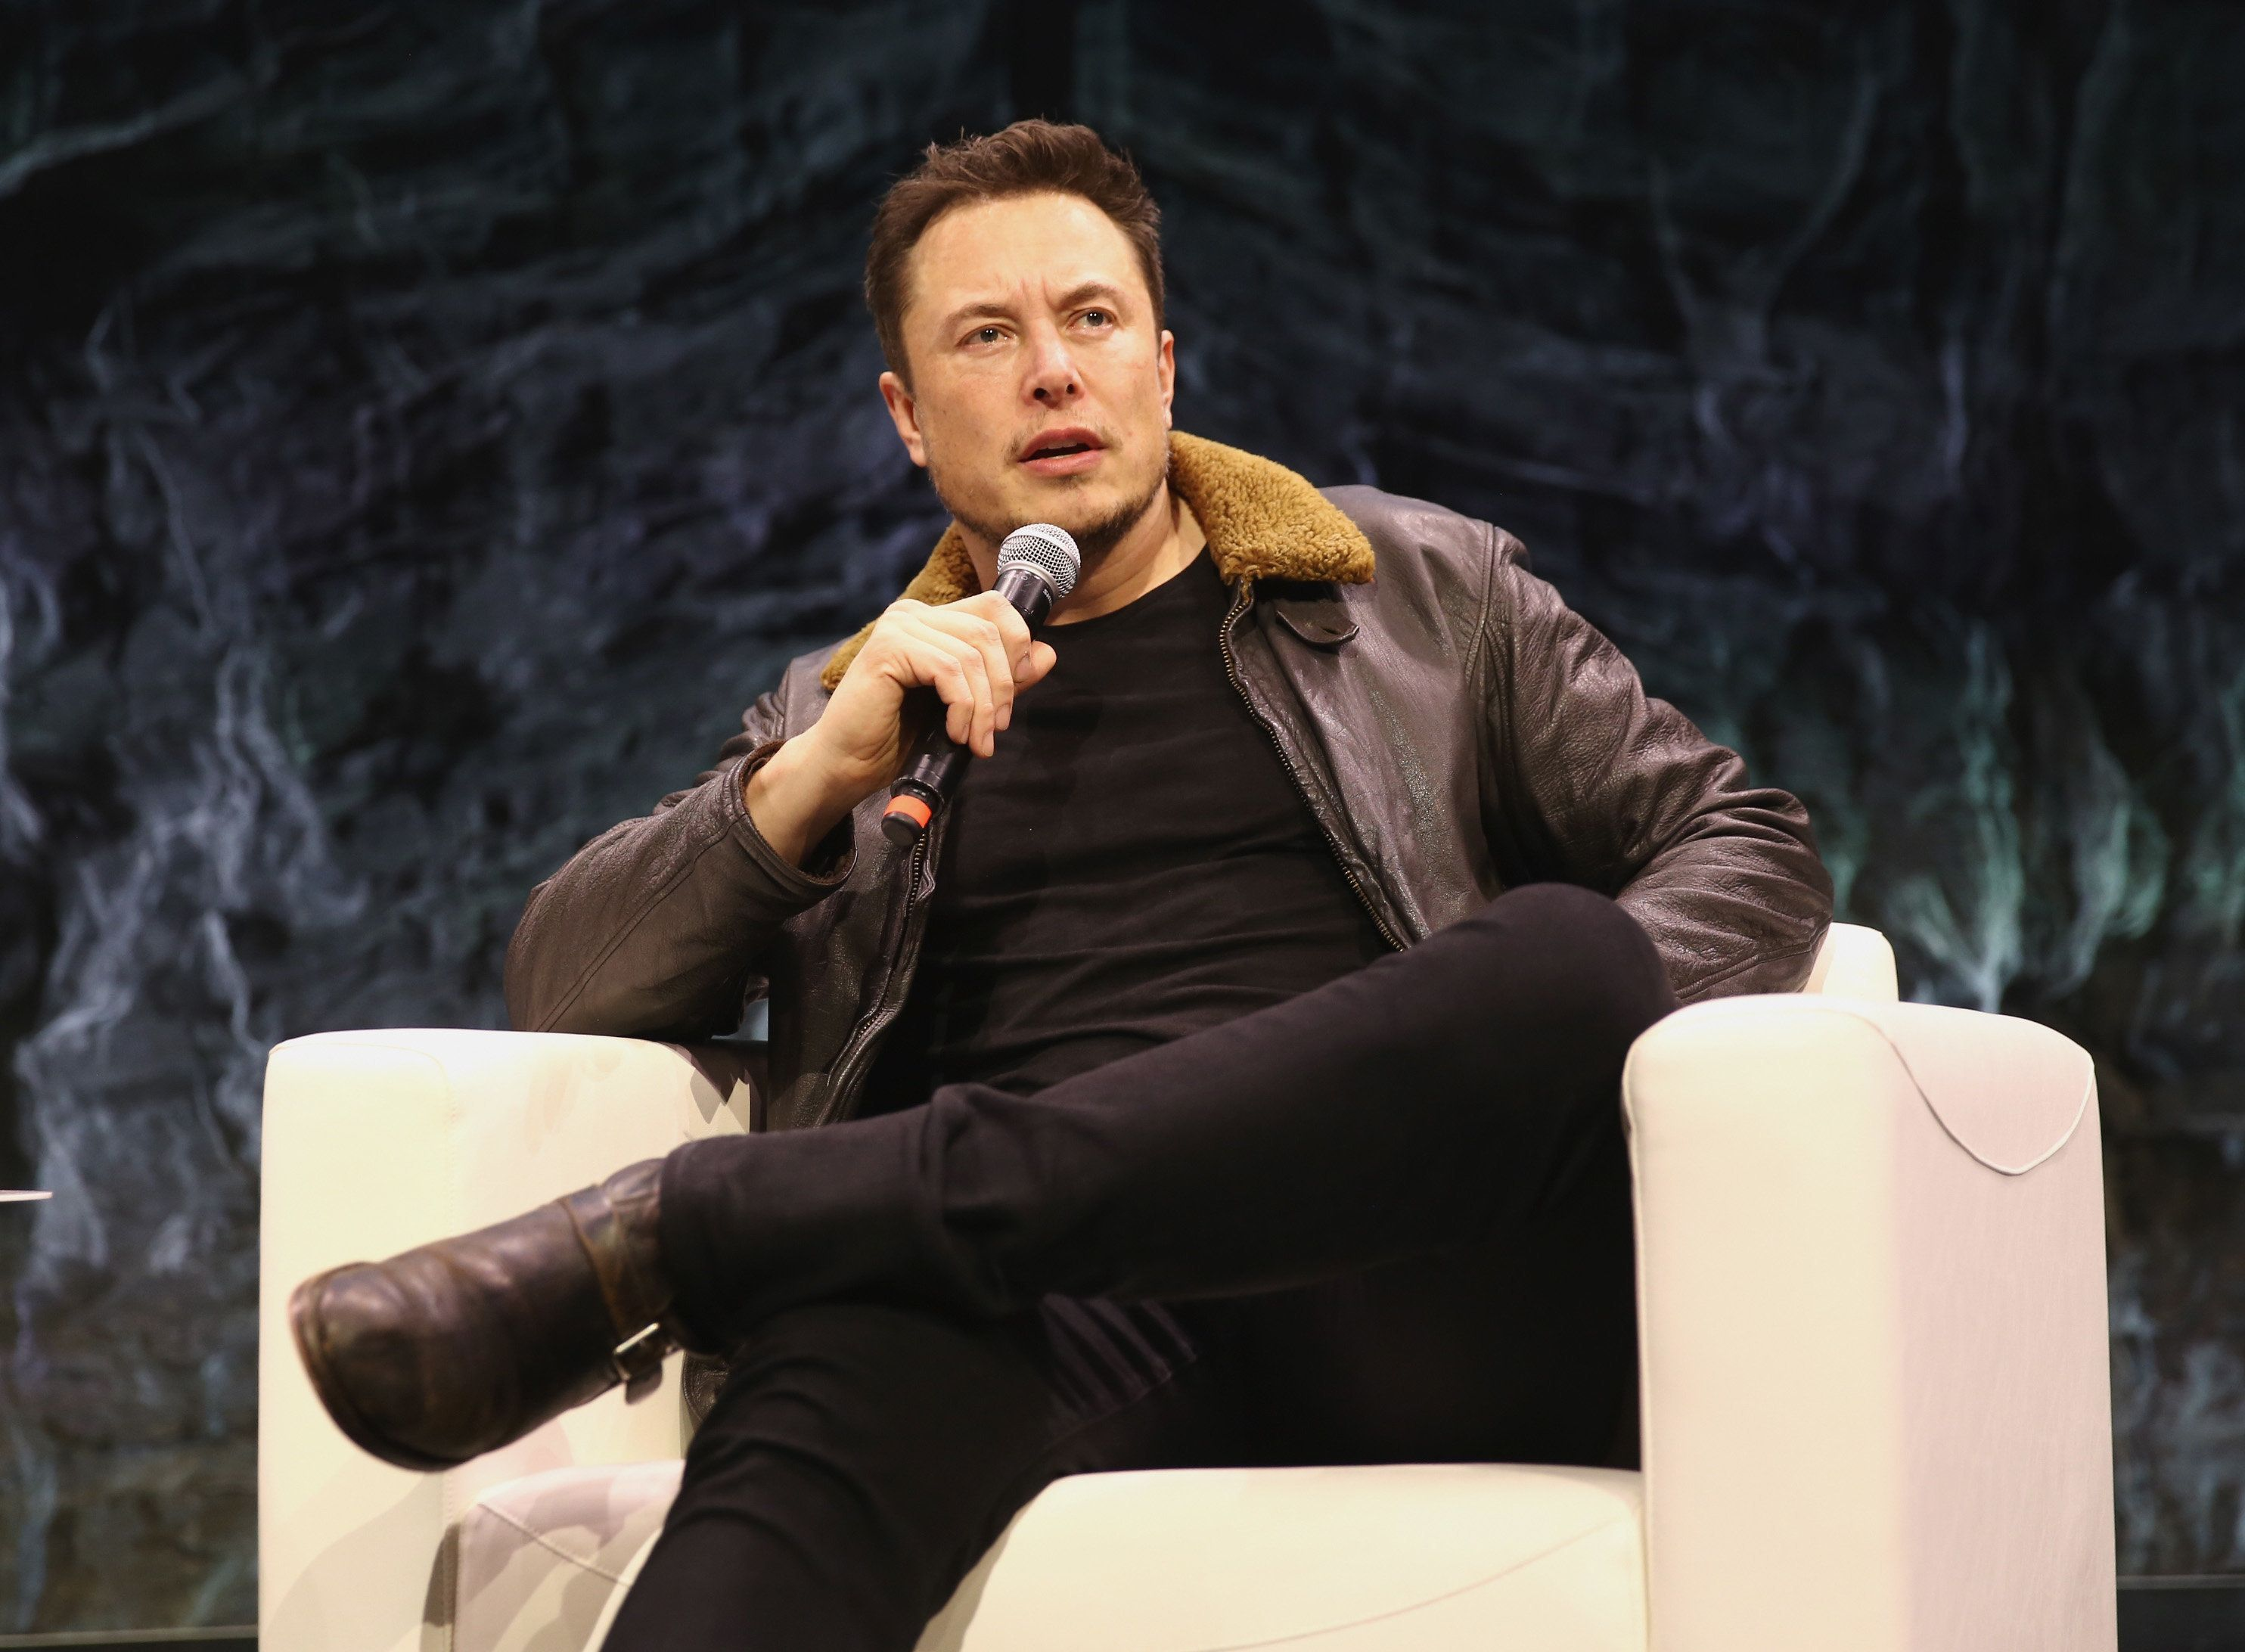 AUSTIN, TX - MARCH 11:  Elon Musk speaks onstage at Elon Musk Answers Your Questions! during SXSW at ACL Live on March 11, 2018 in Austin, Texas.  (Photo by Diego Donamaria/Getty Images for SXSW)